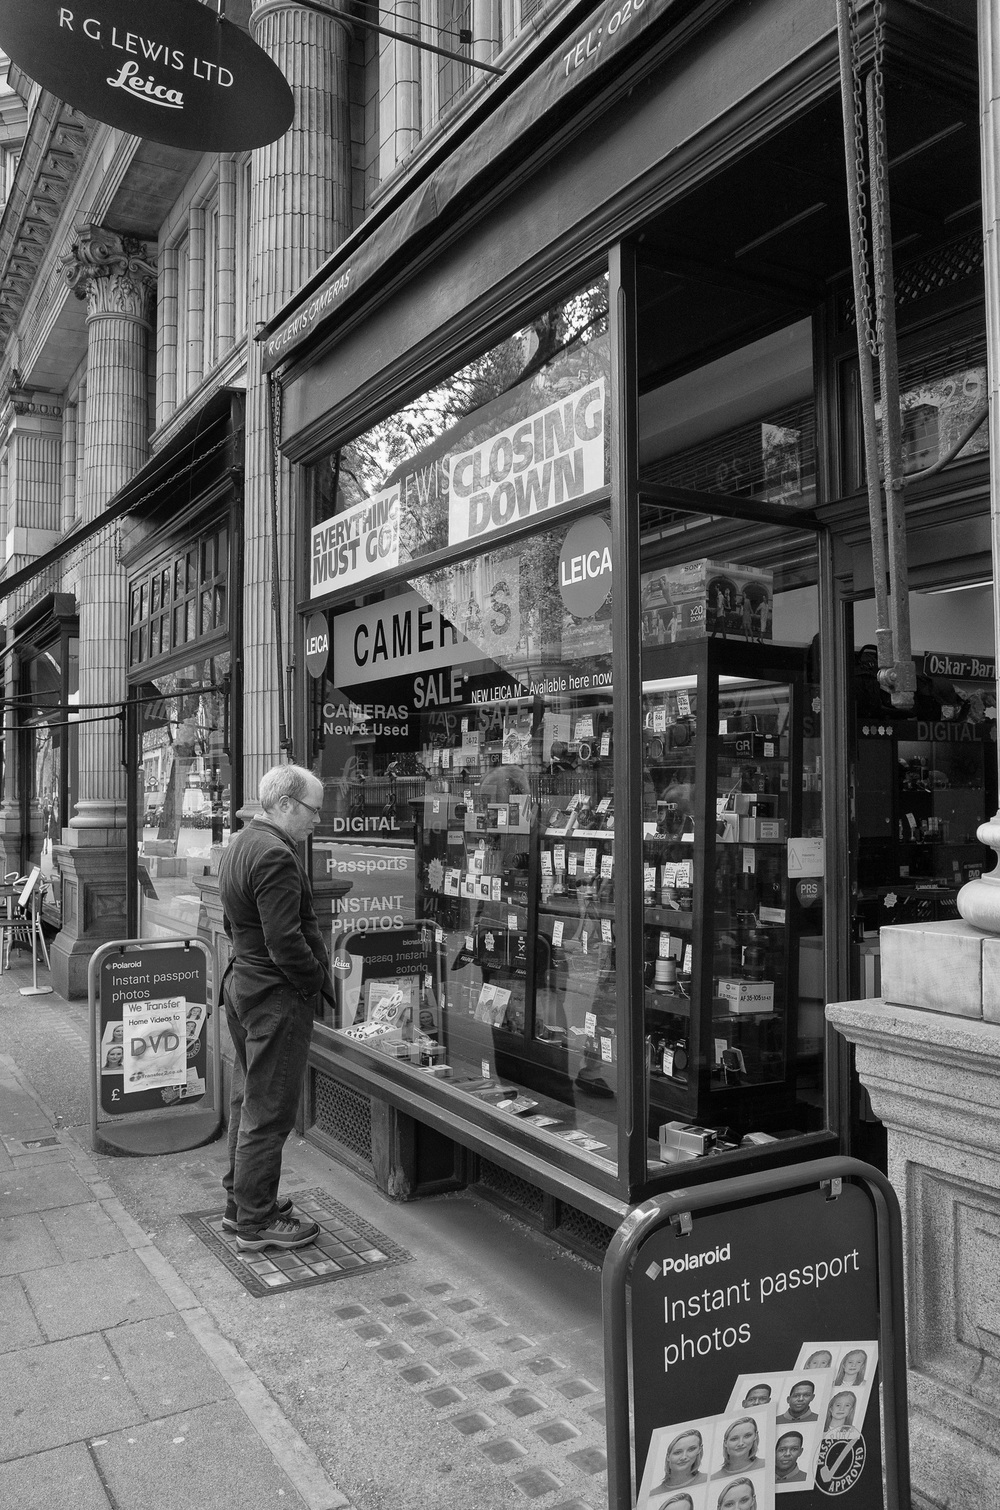 Chance tomorrow for a final look in the window of one of London's oldest photographic retailers